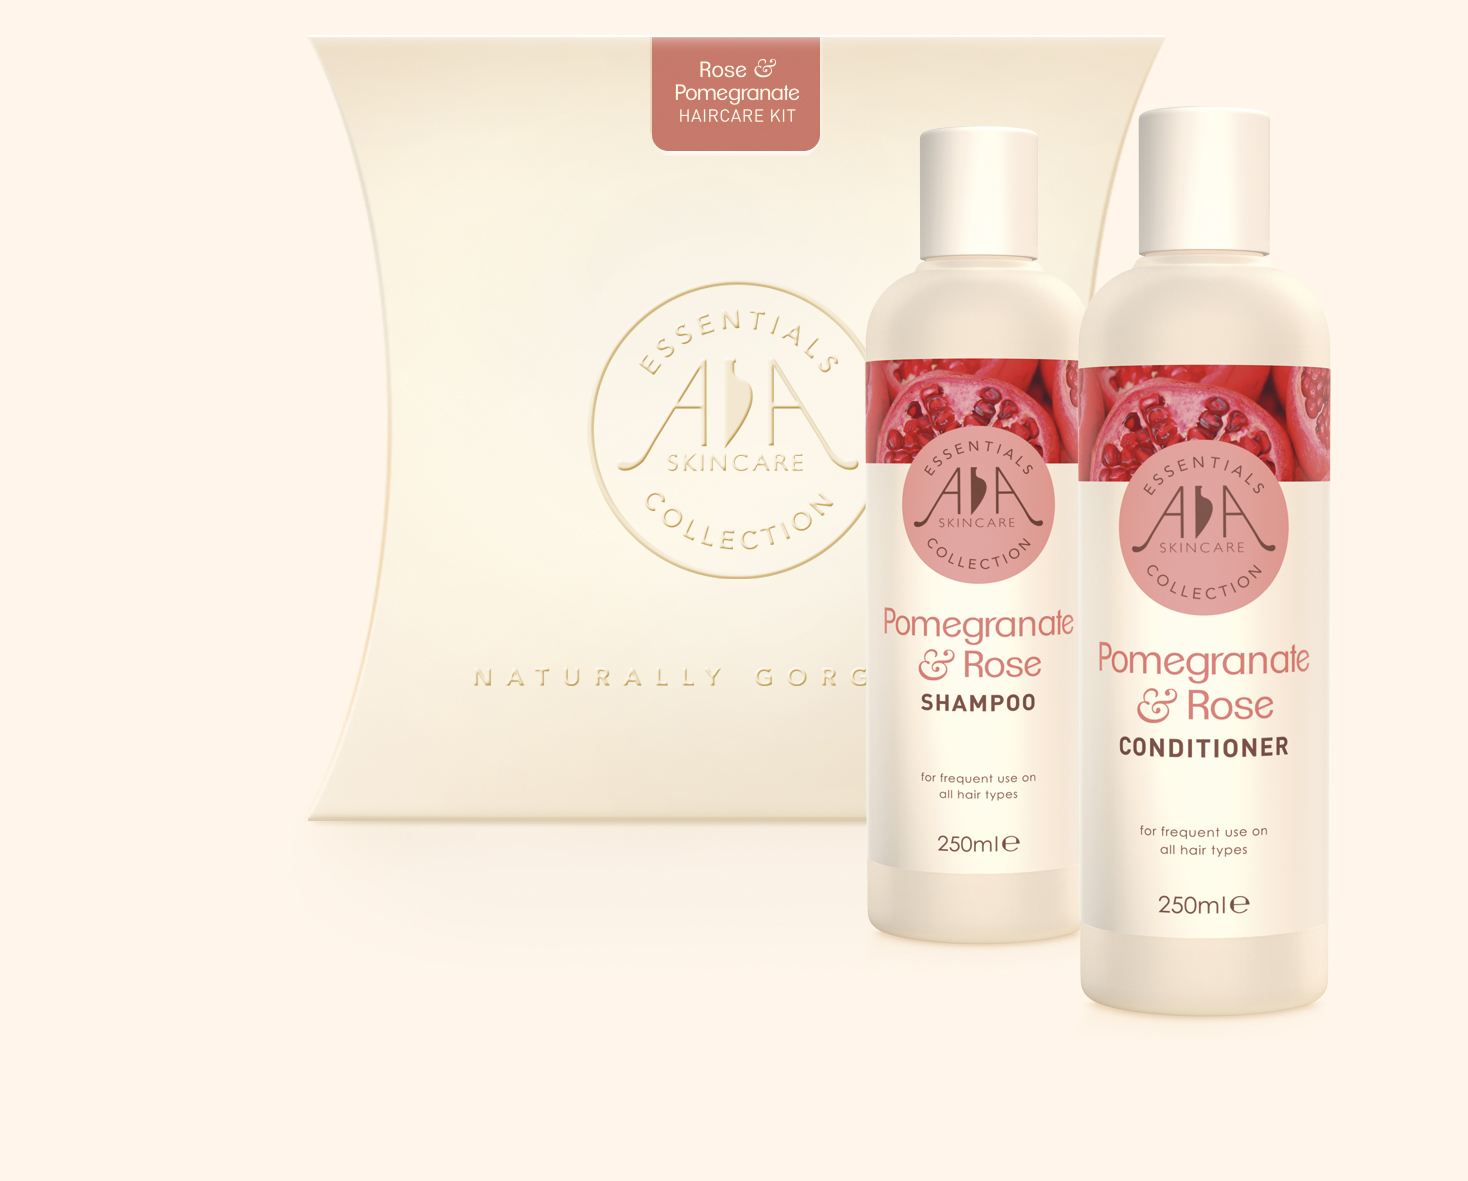 Rose & Pomegranate Hair Care Kit